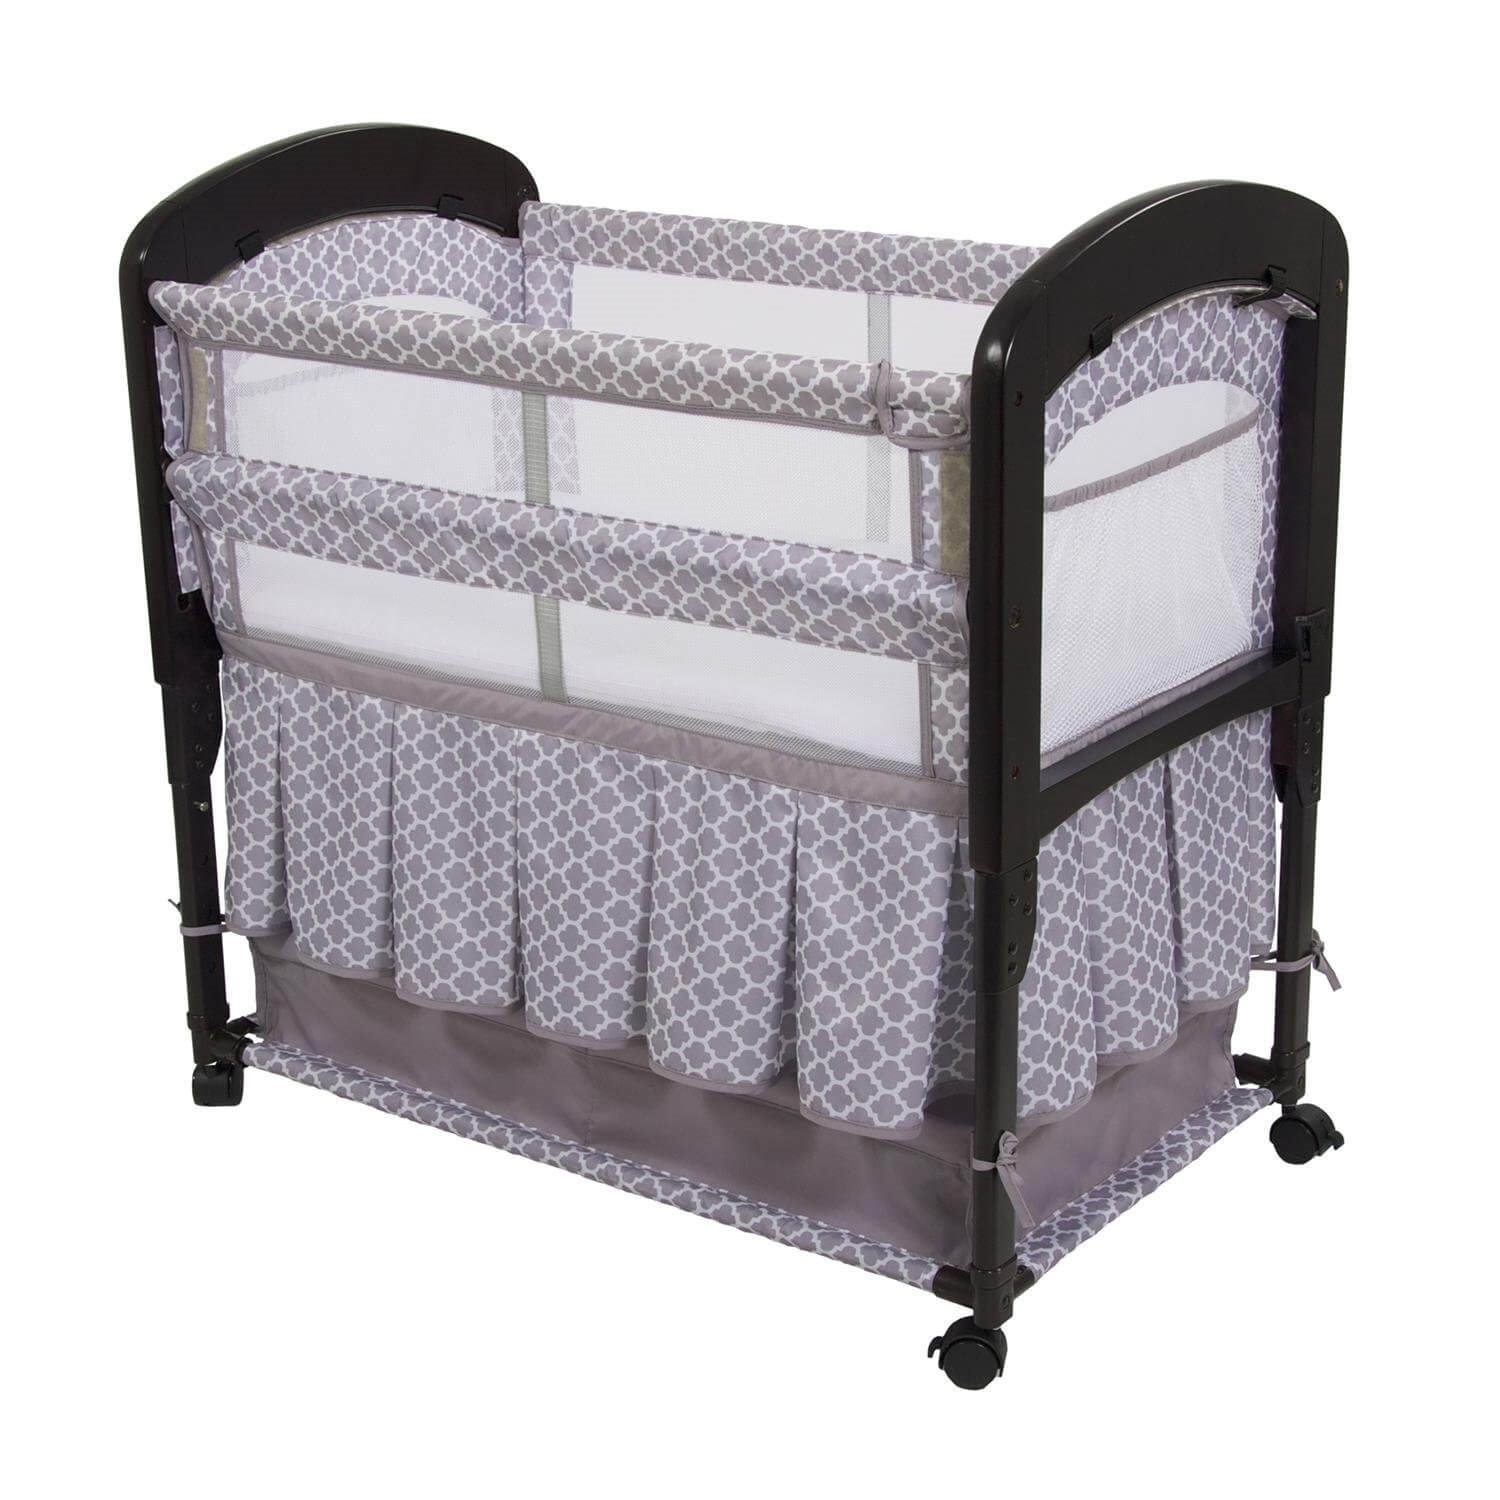 Newborn Bassinet Best Graco Pack N Play Where Should Newborns Sleep Familyeducation